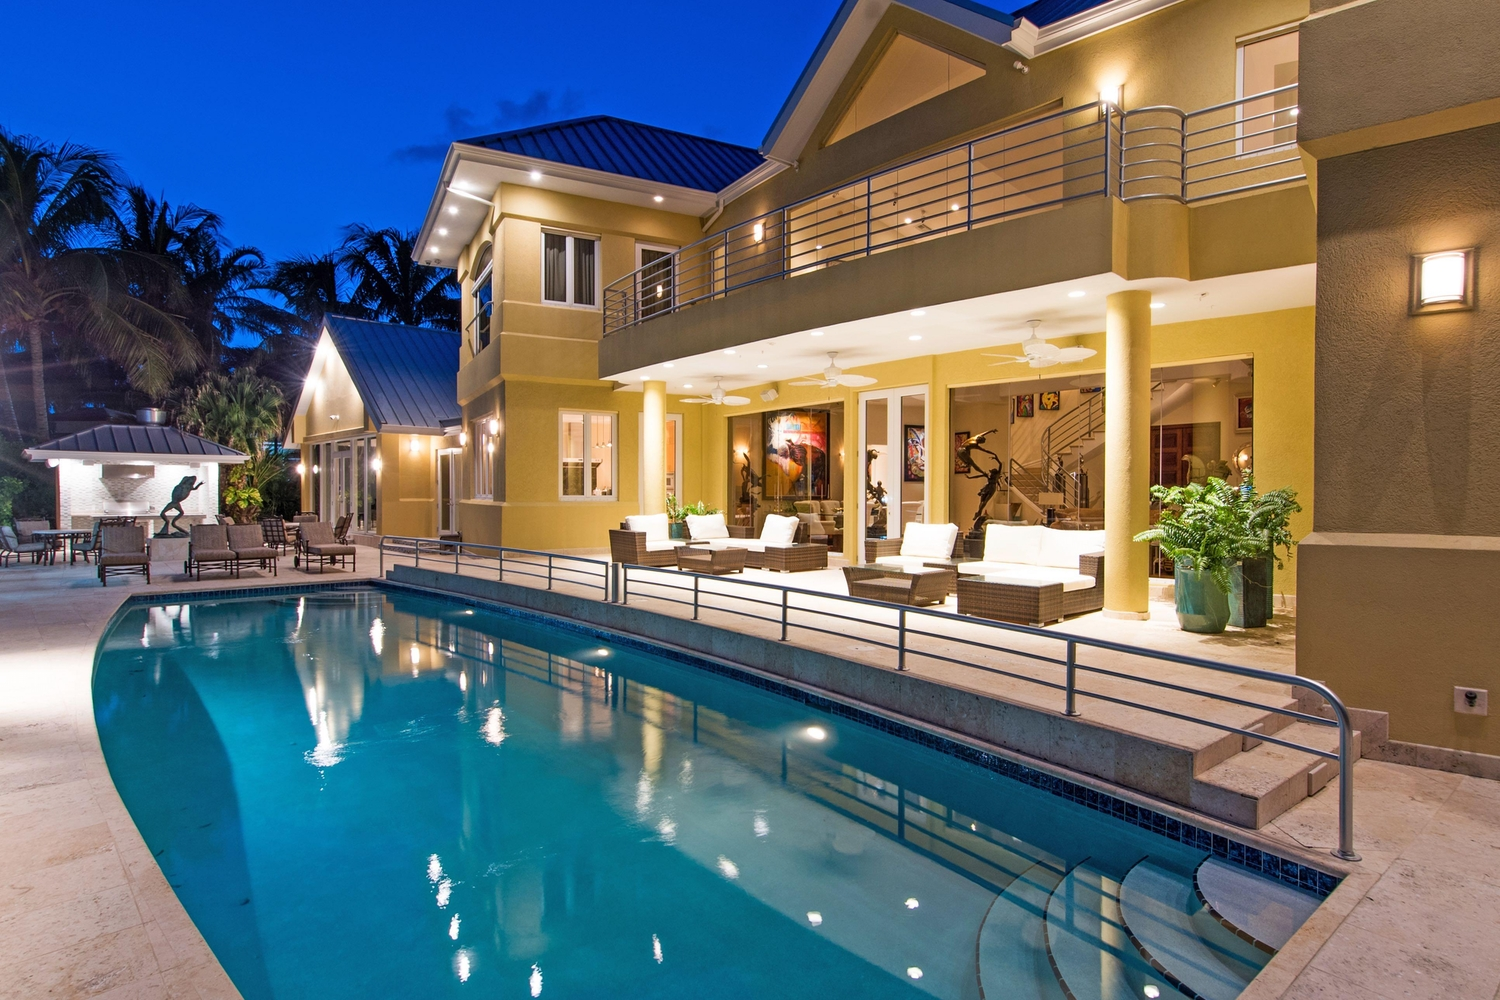 Twilight view of a lit pool and deck